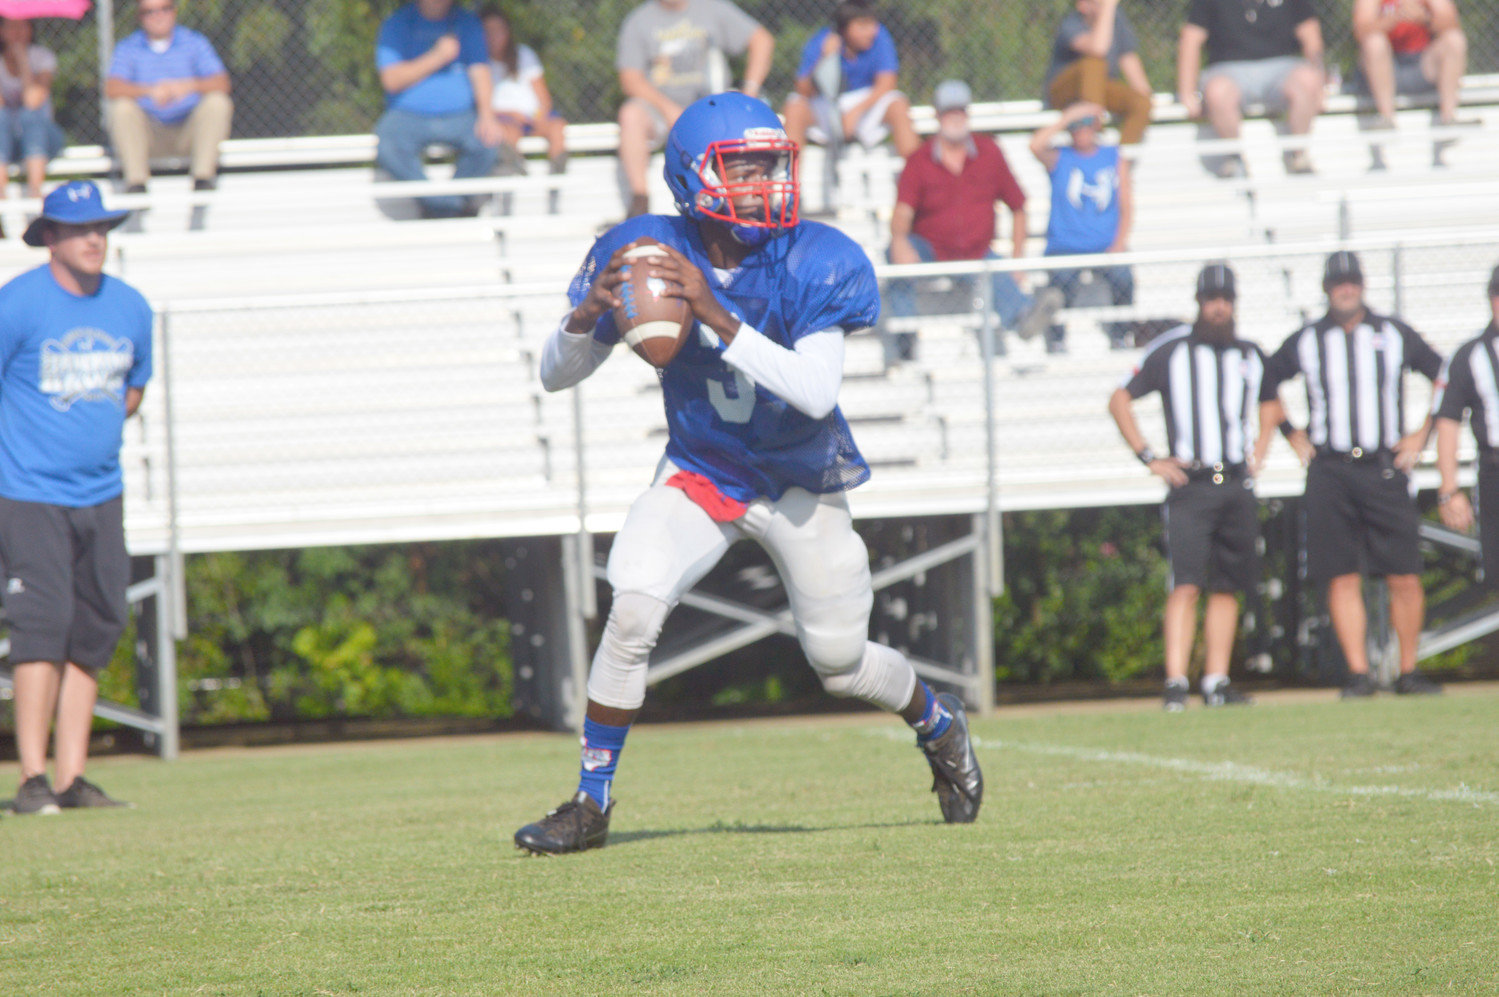 Trey Berry (3) rolls out to throw a pass in Quitman's scrimmage against Hawkins last Thursday.